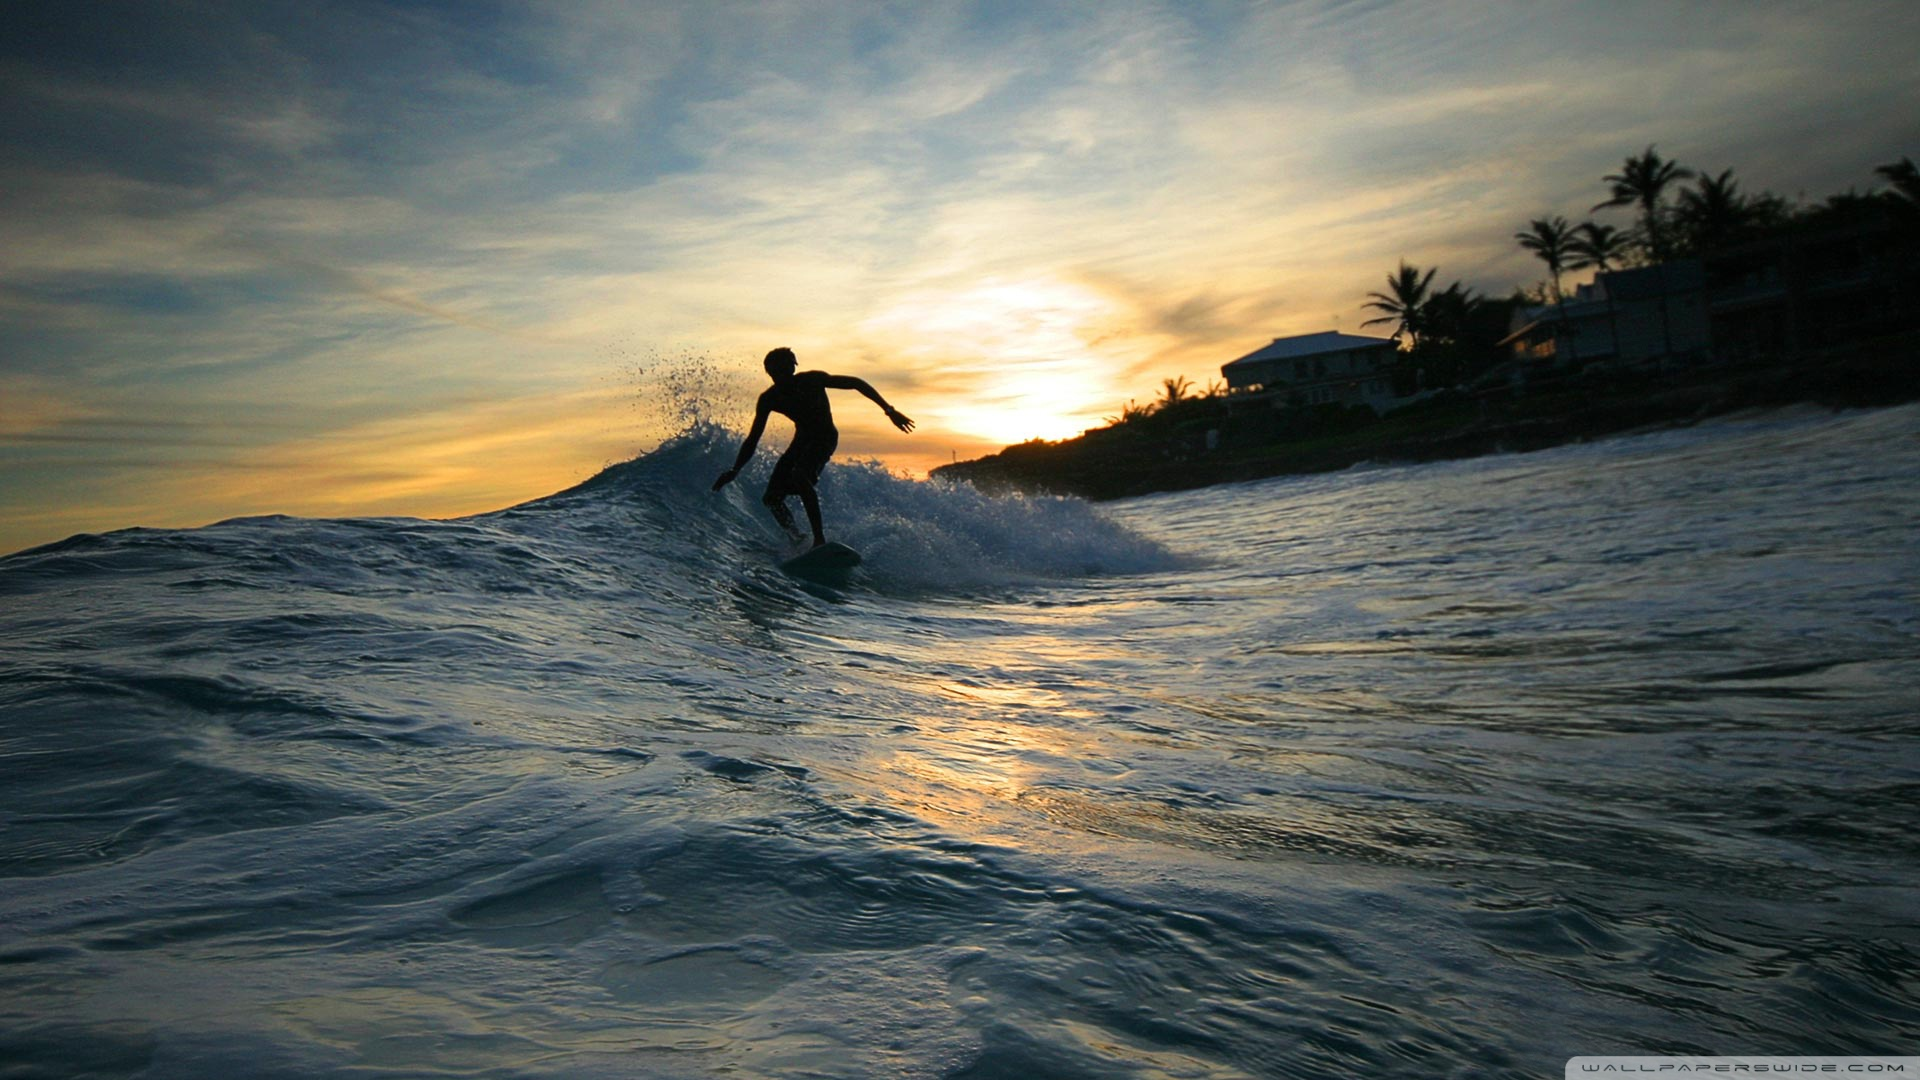 Download Surfer Silhouette Wallpaper 1920x1080 Wallpoper 1920x1080